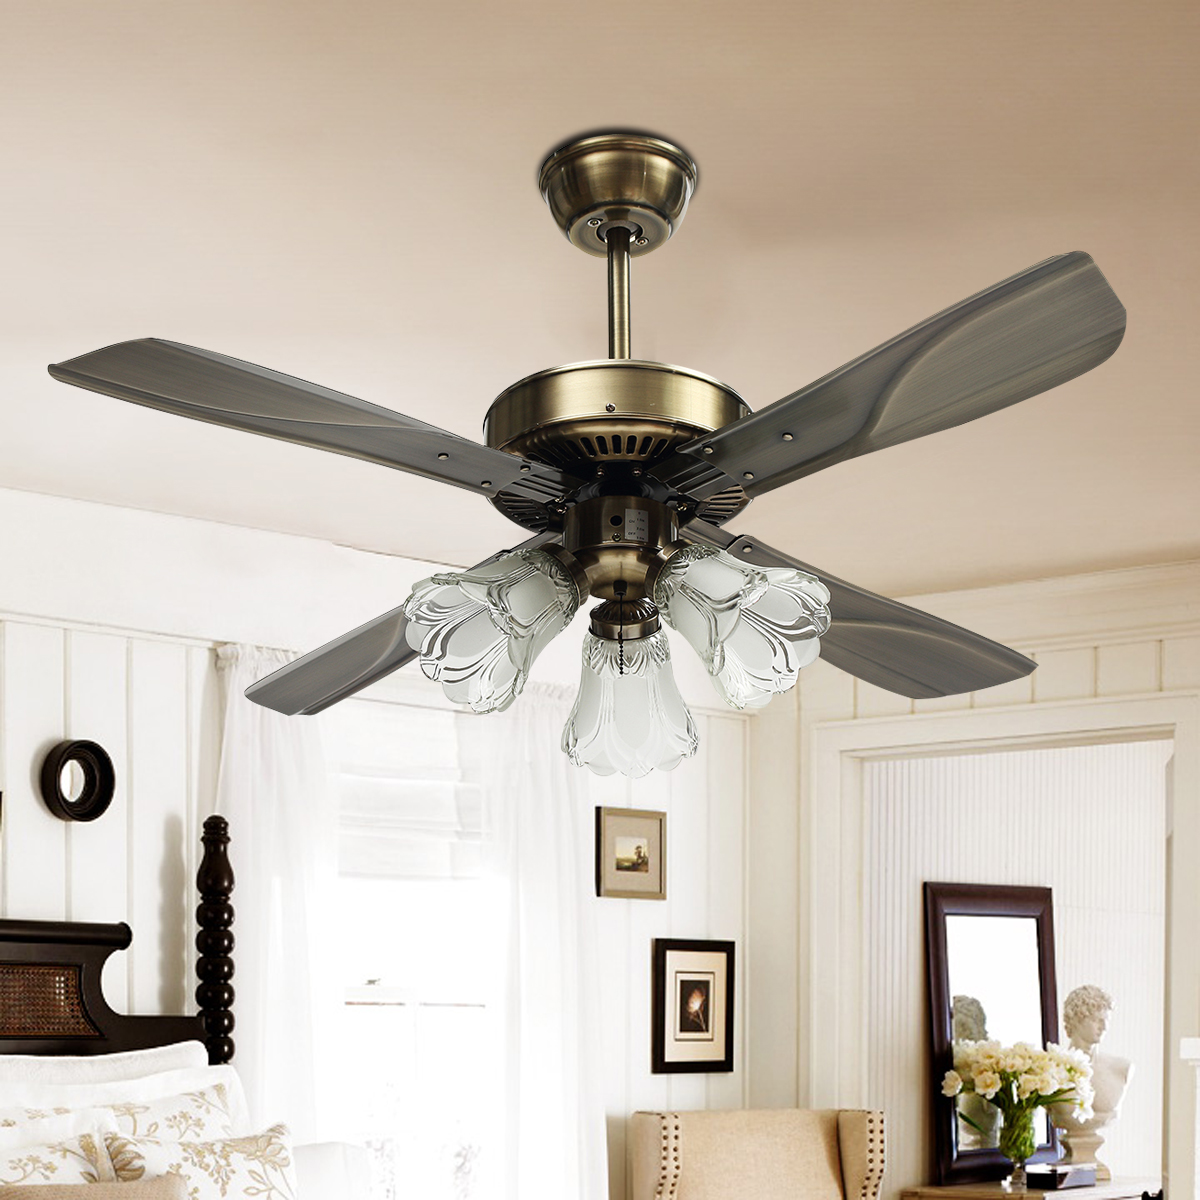 Mising with Remote Control Ceiling Fan with LED 42 inch E27 Retro Style Home Bedroom Living Room Dining Room Fan Light Fan